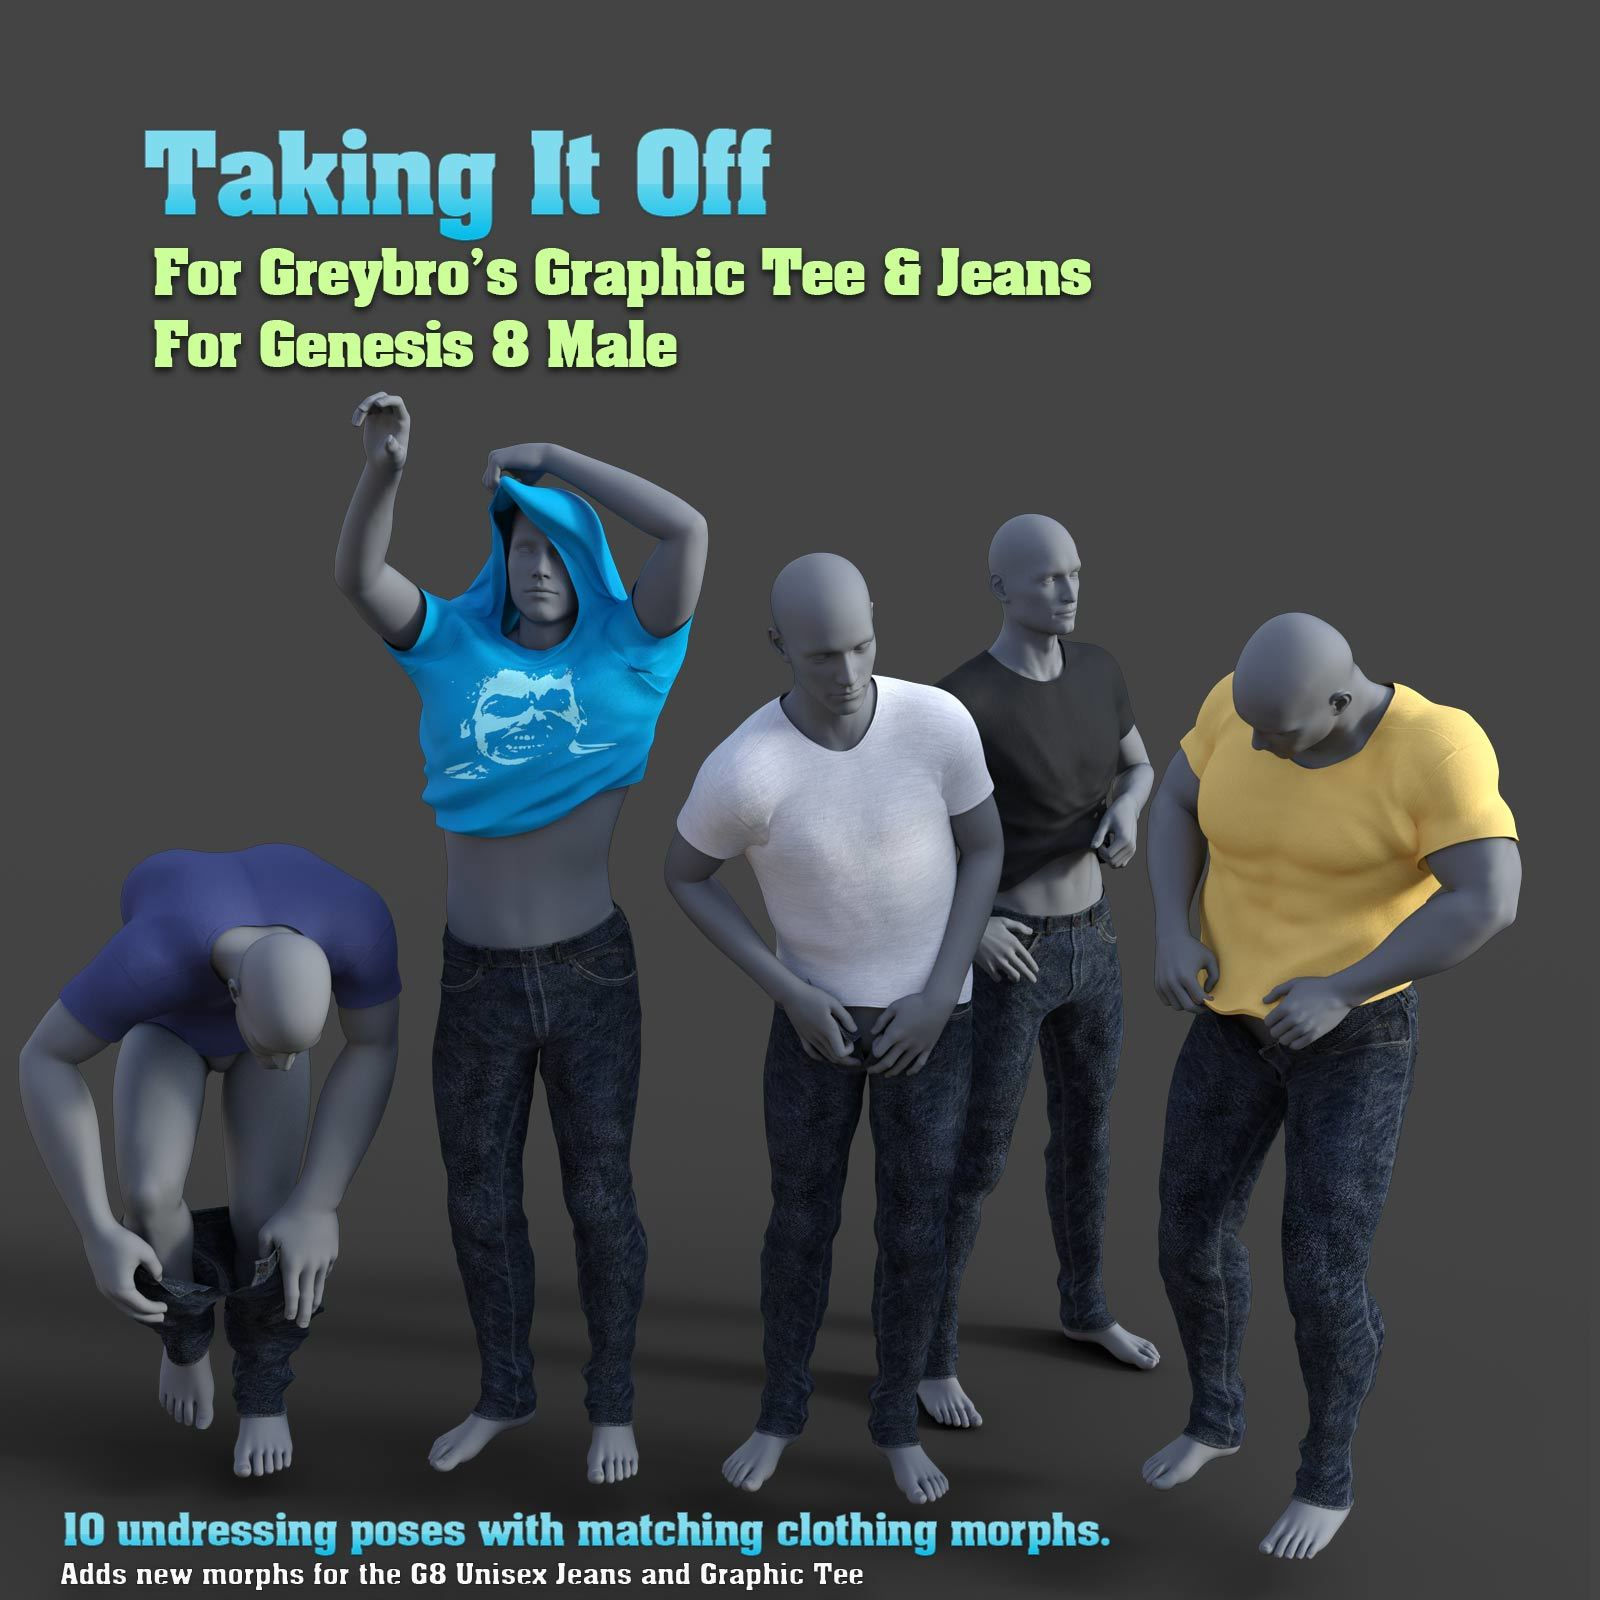 Taking It Off For Greybro's G8 Jeans and Tee Male Edition by Disciple3d